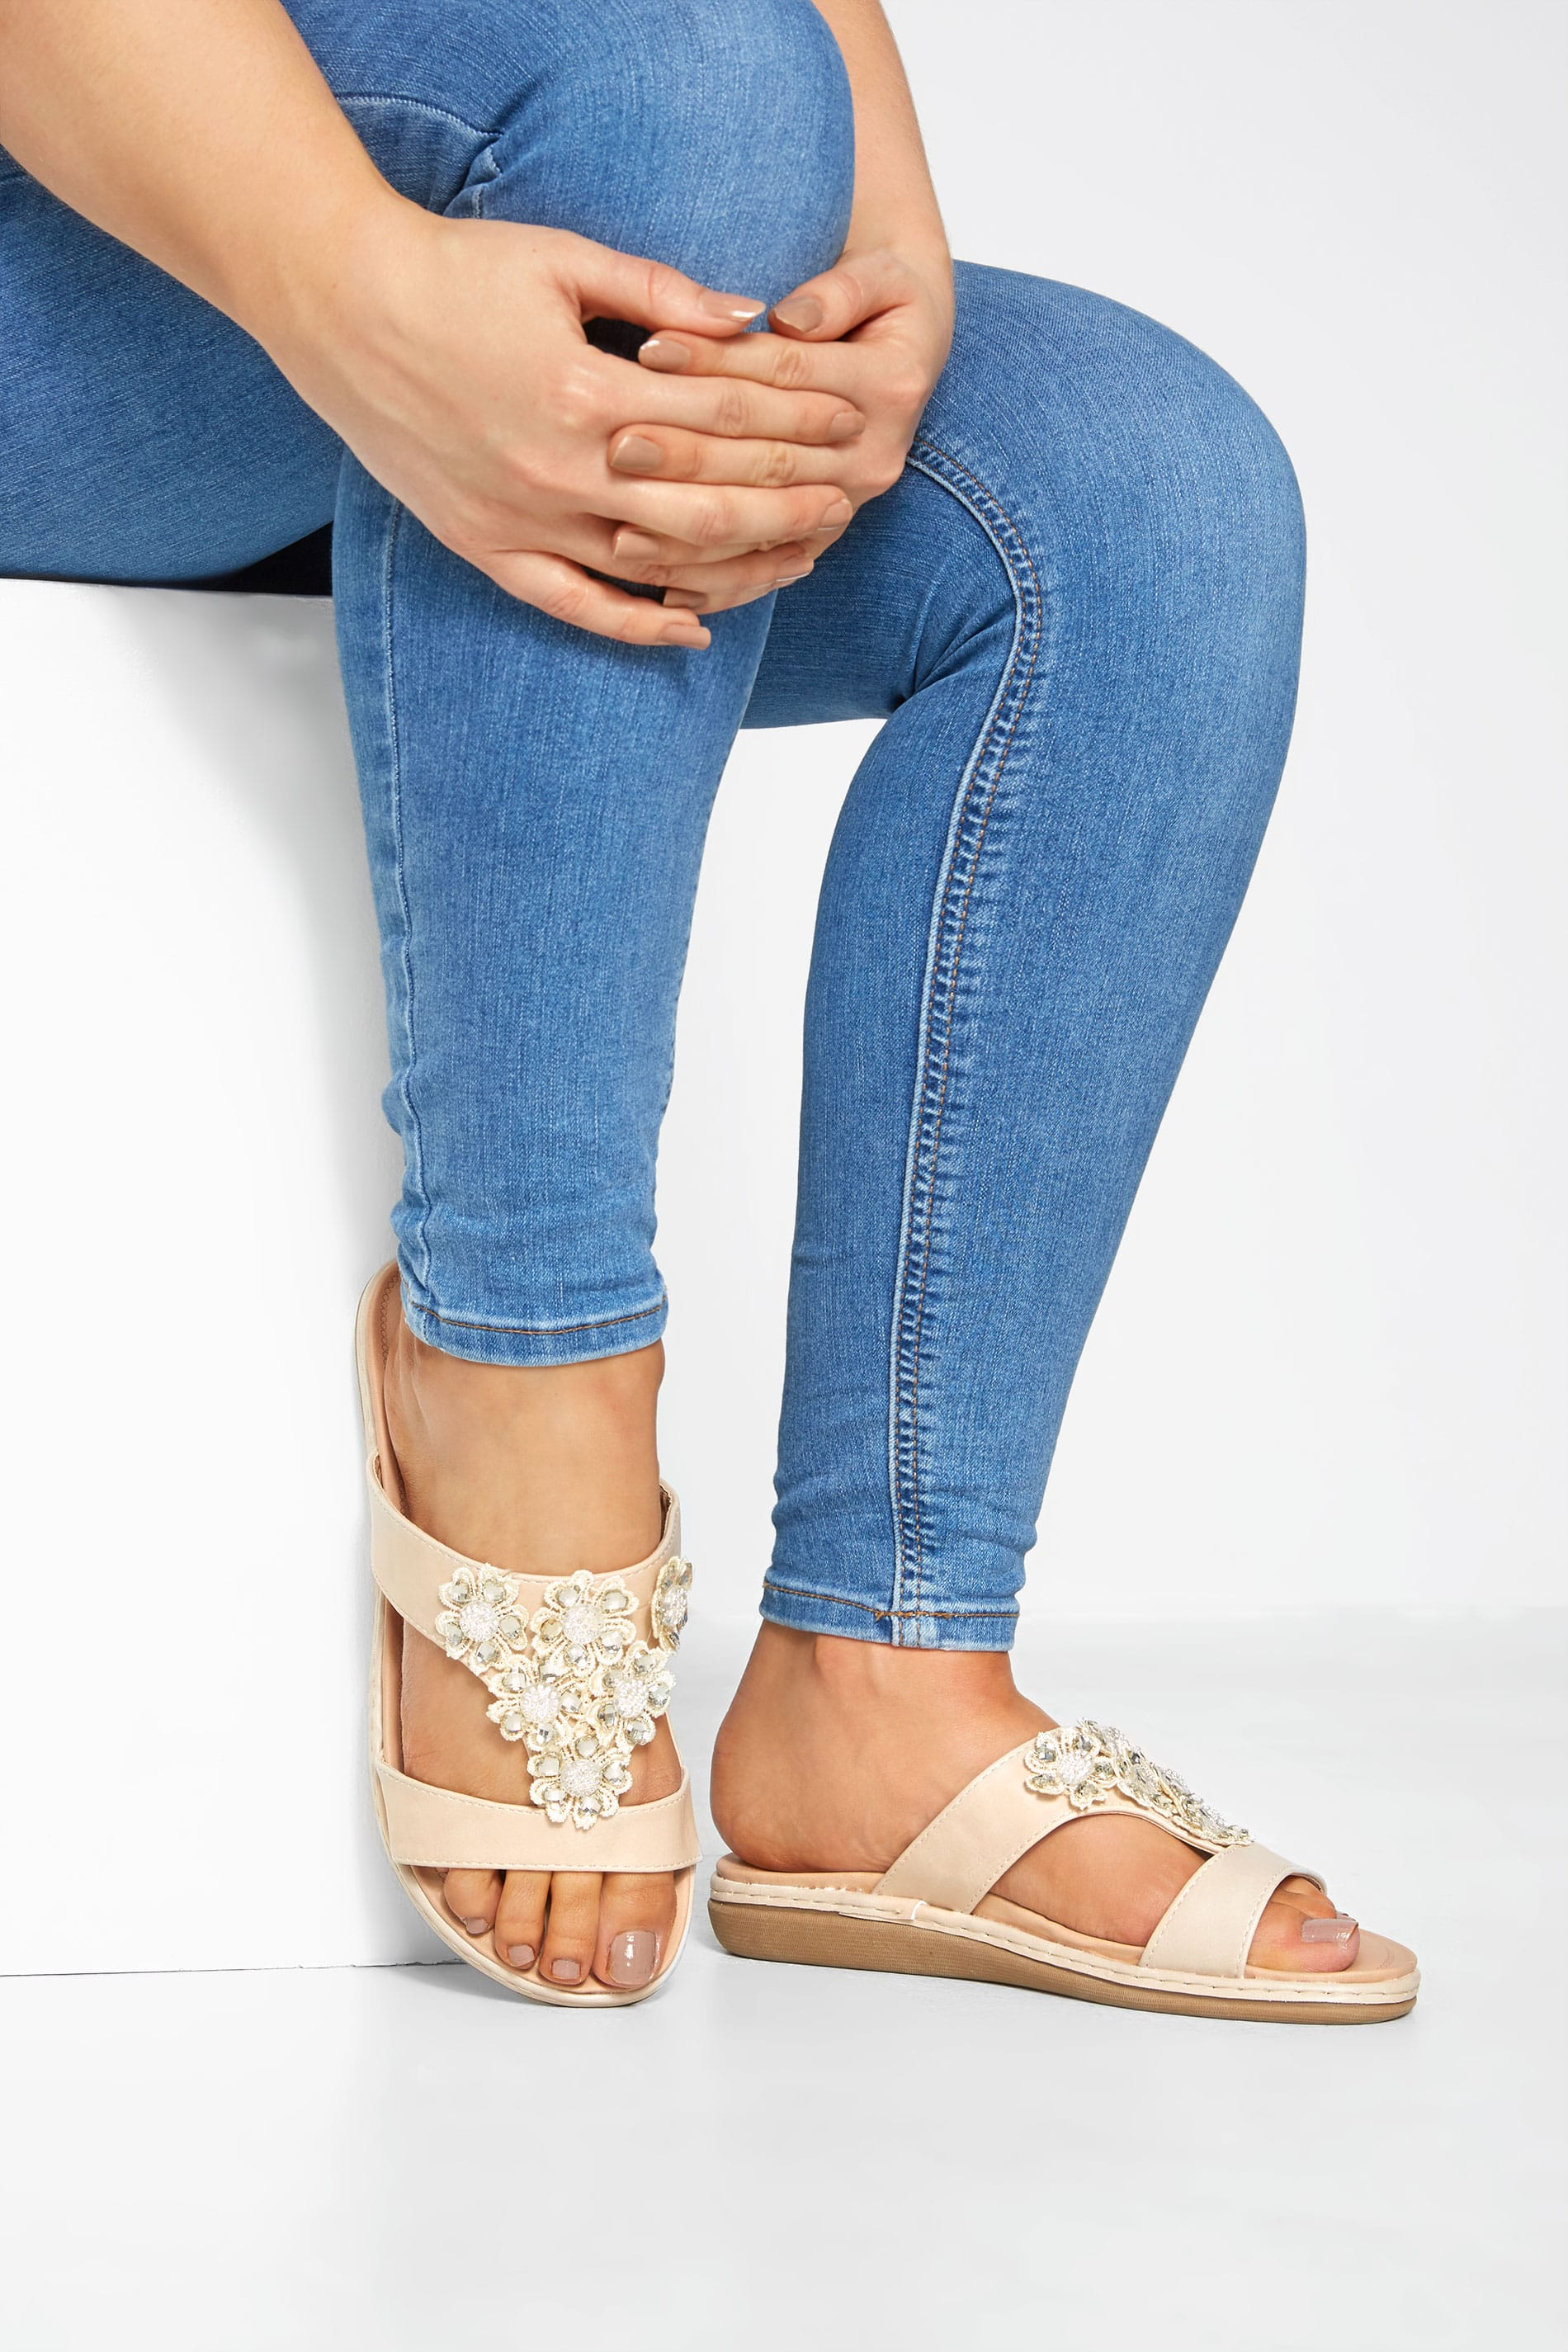 Stone Flower Diamante Mules In Extra Wide Fit